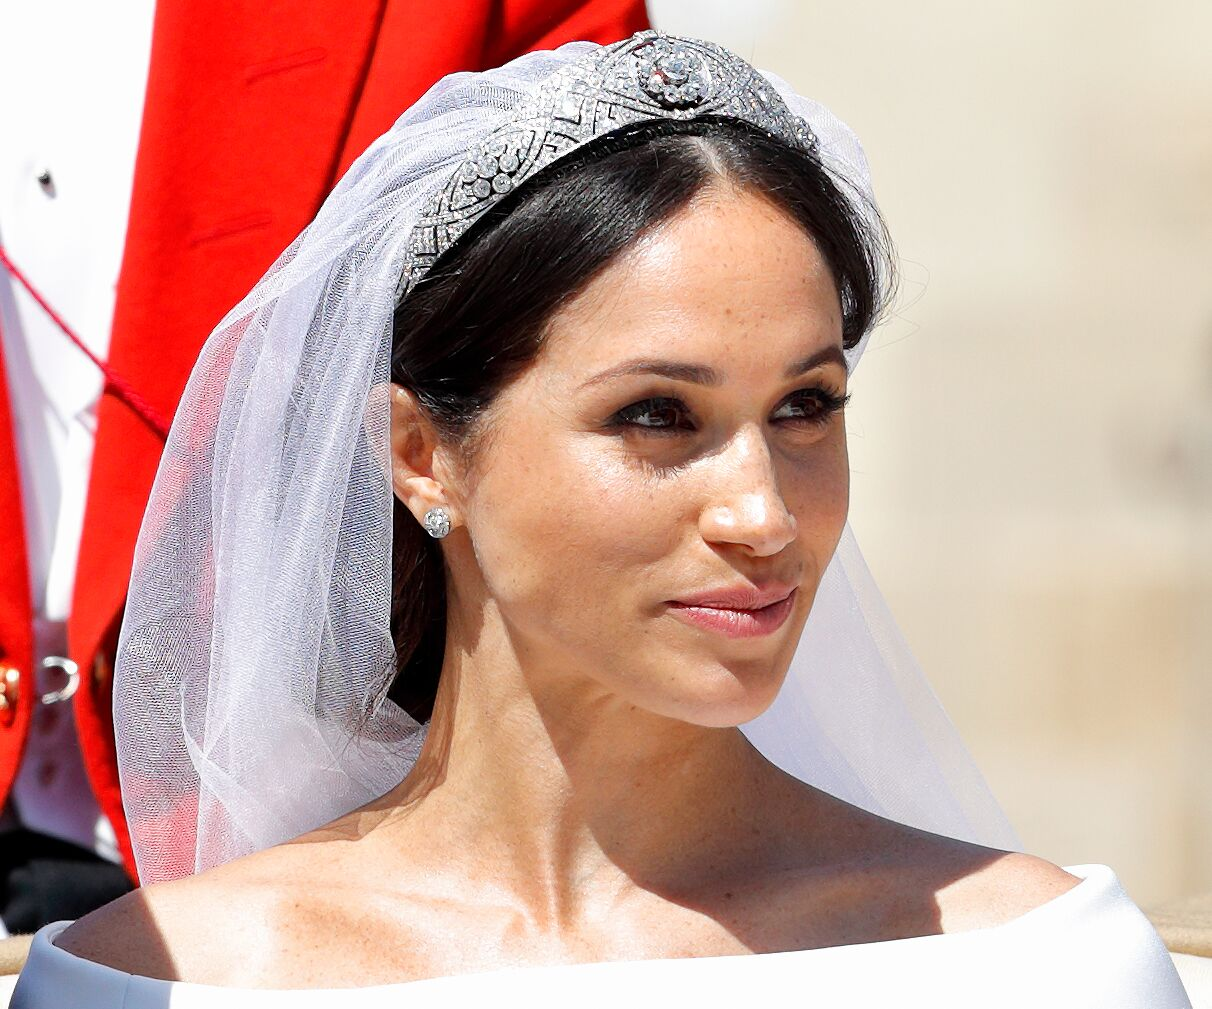 Meghan Markle during her wedding day. | Source: Getty Images